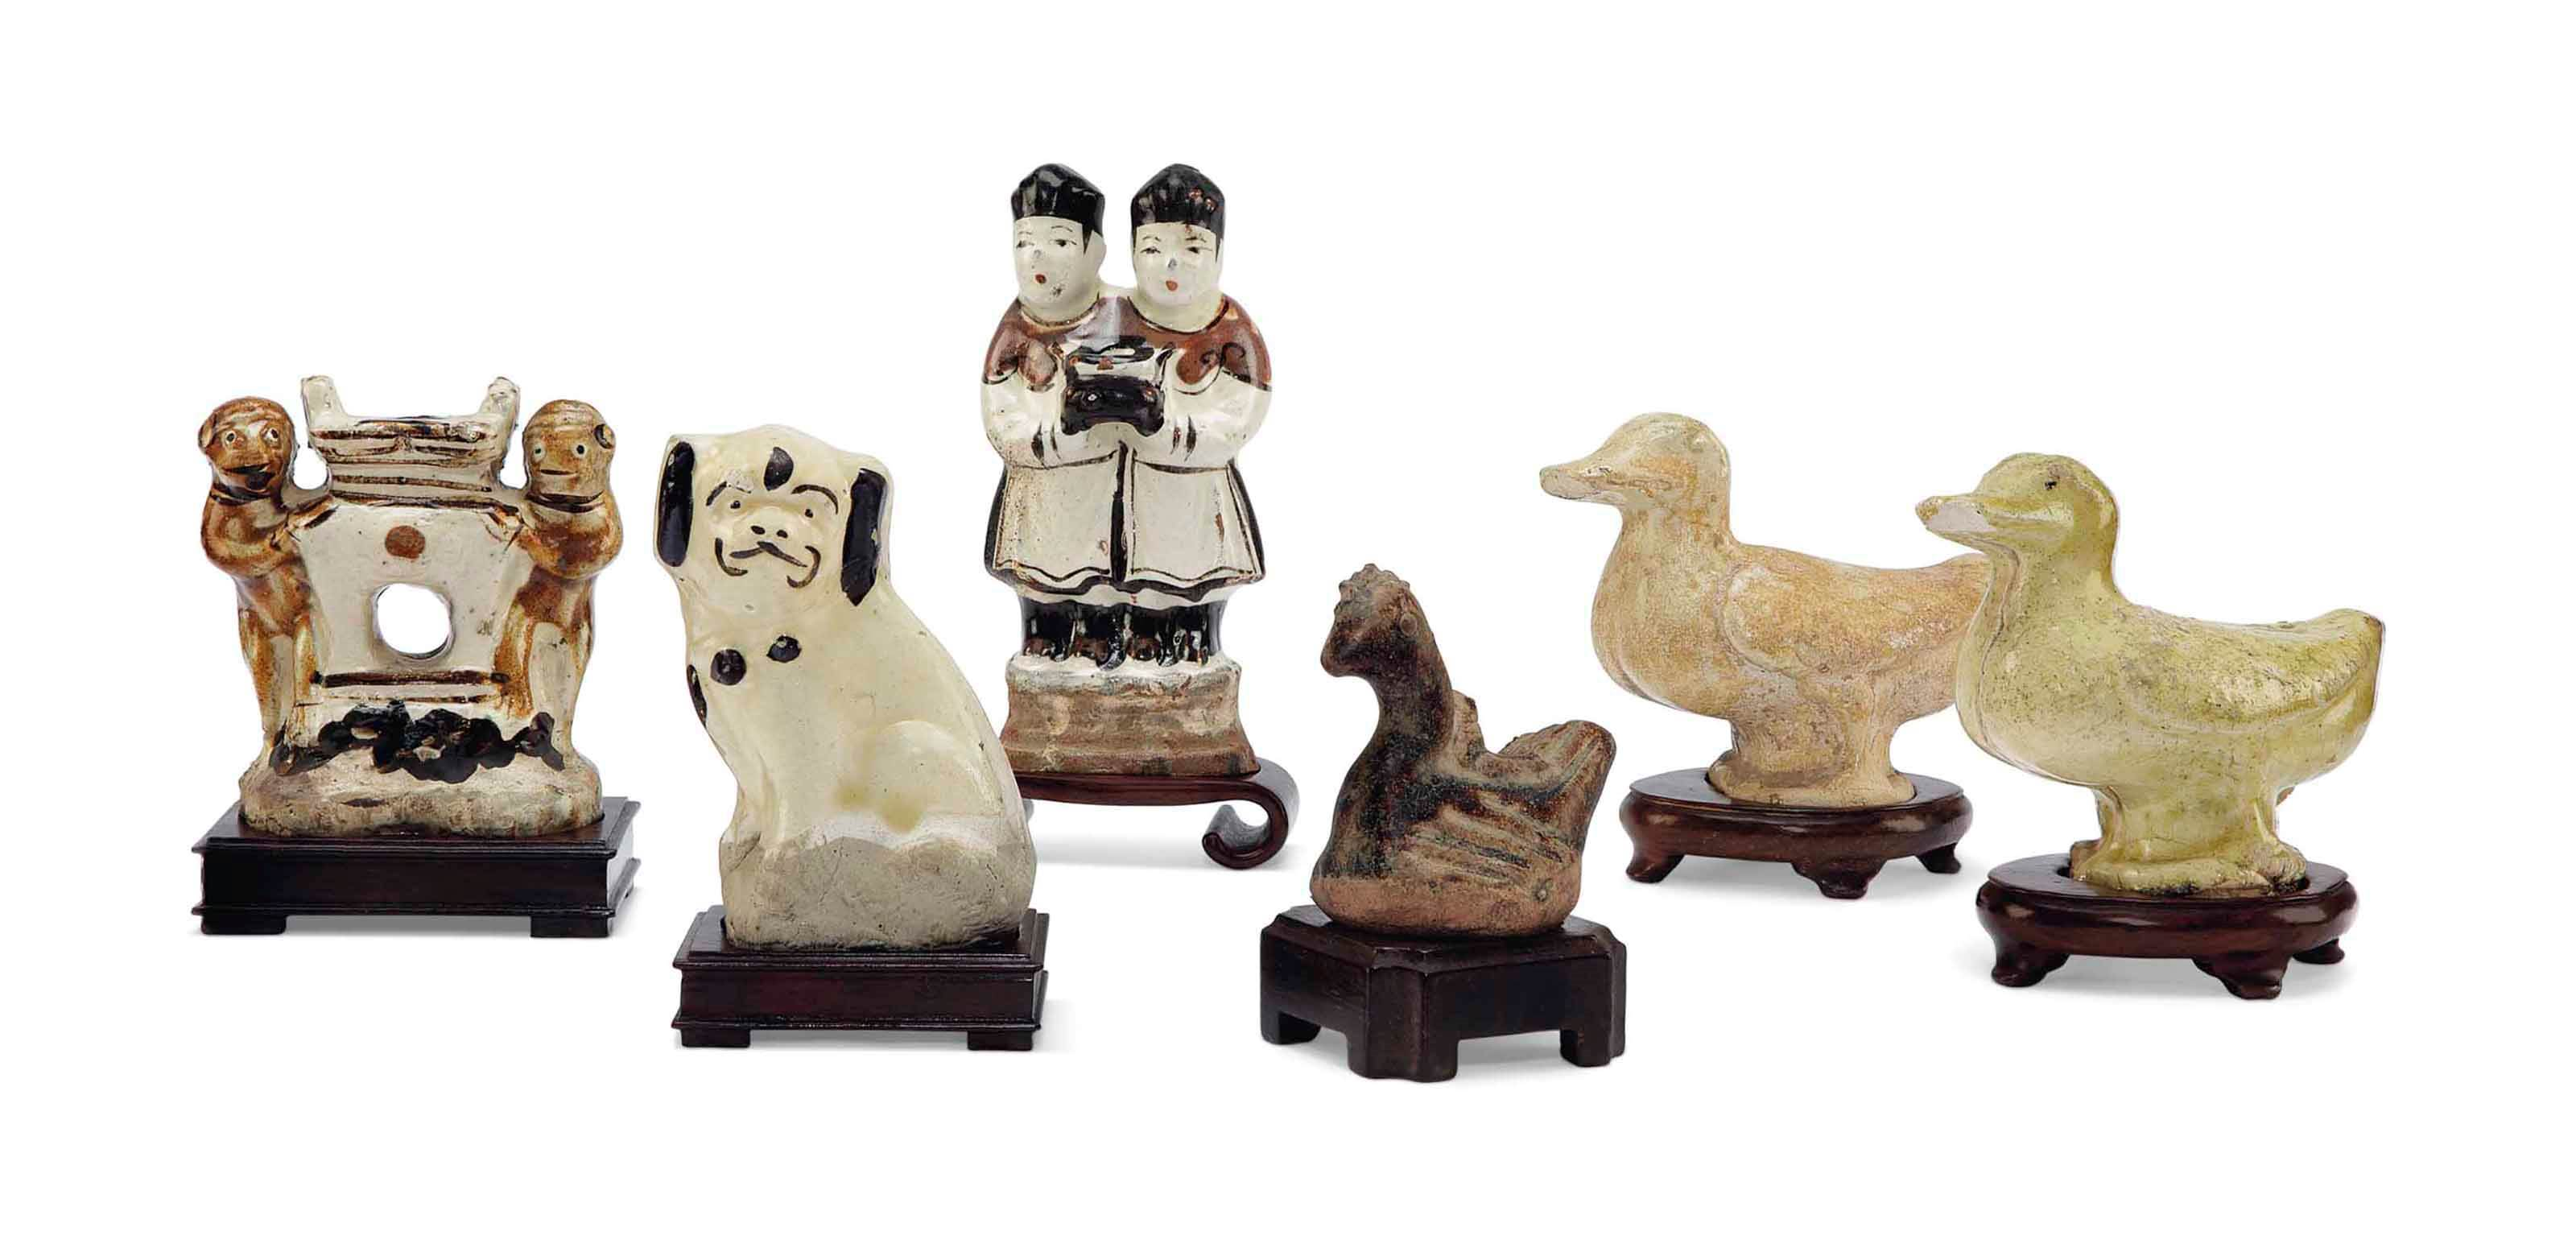 A GROUP OF SMALL FIGURES